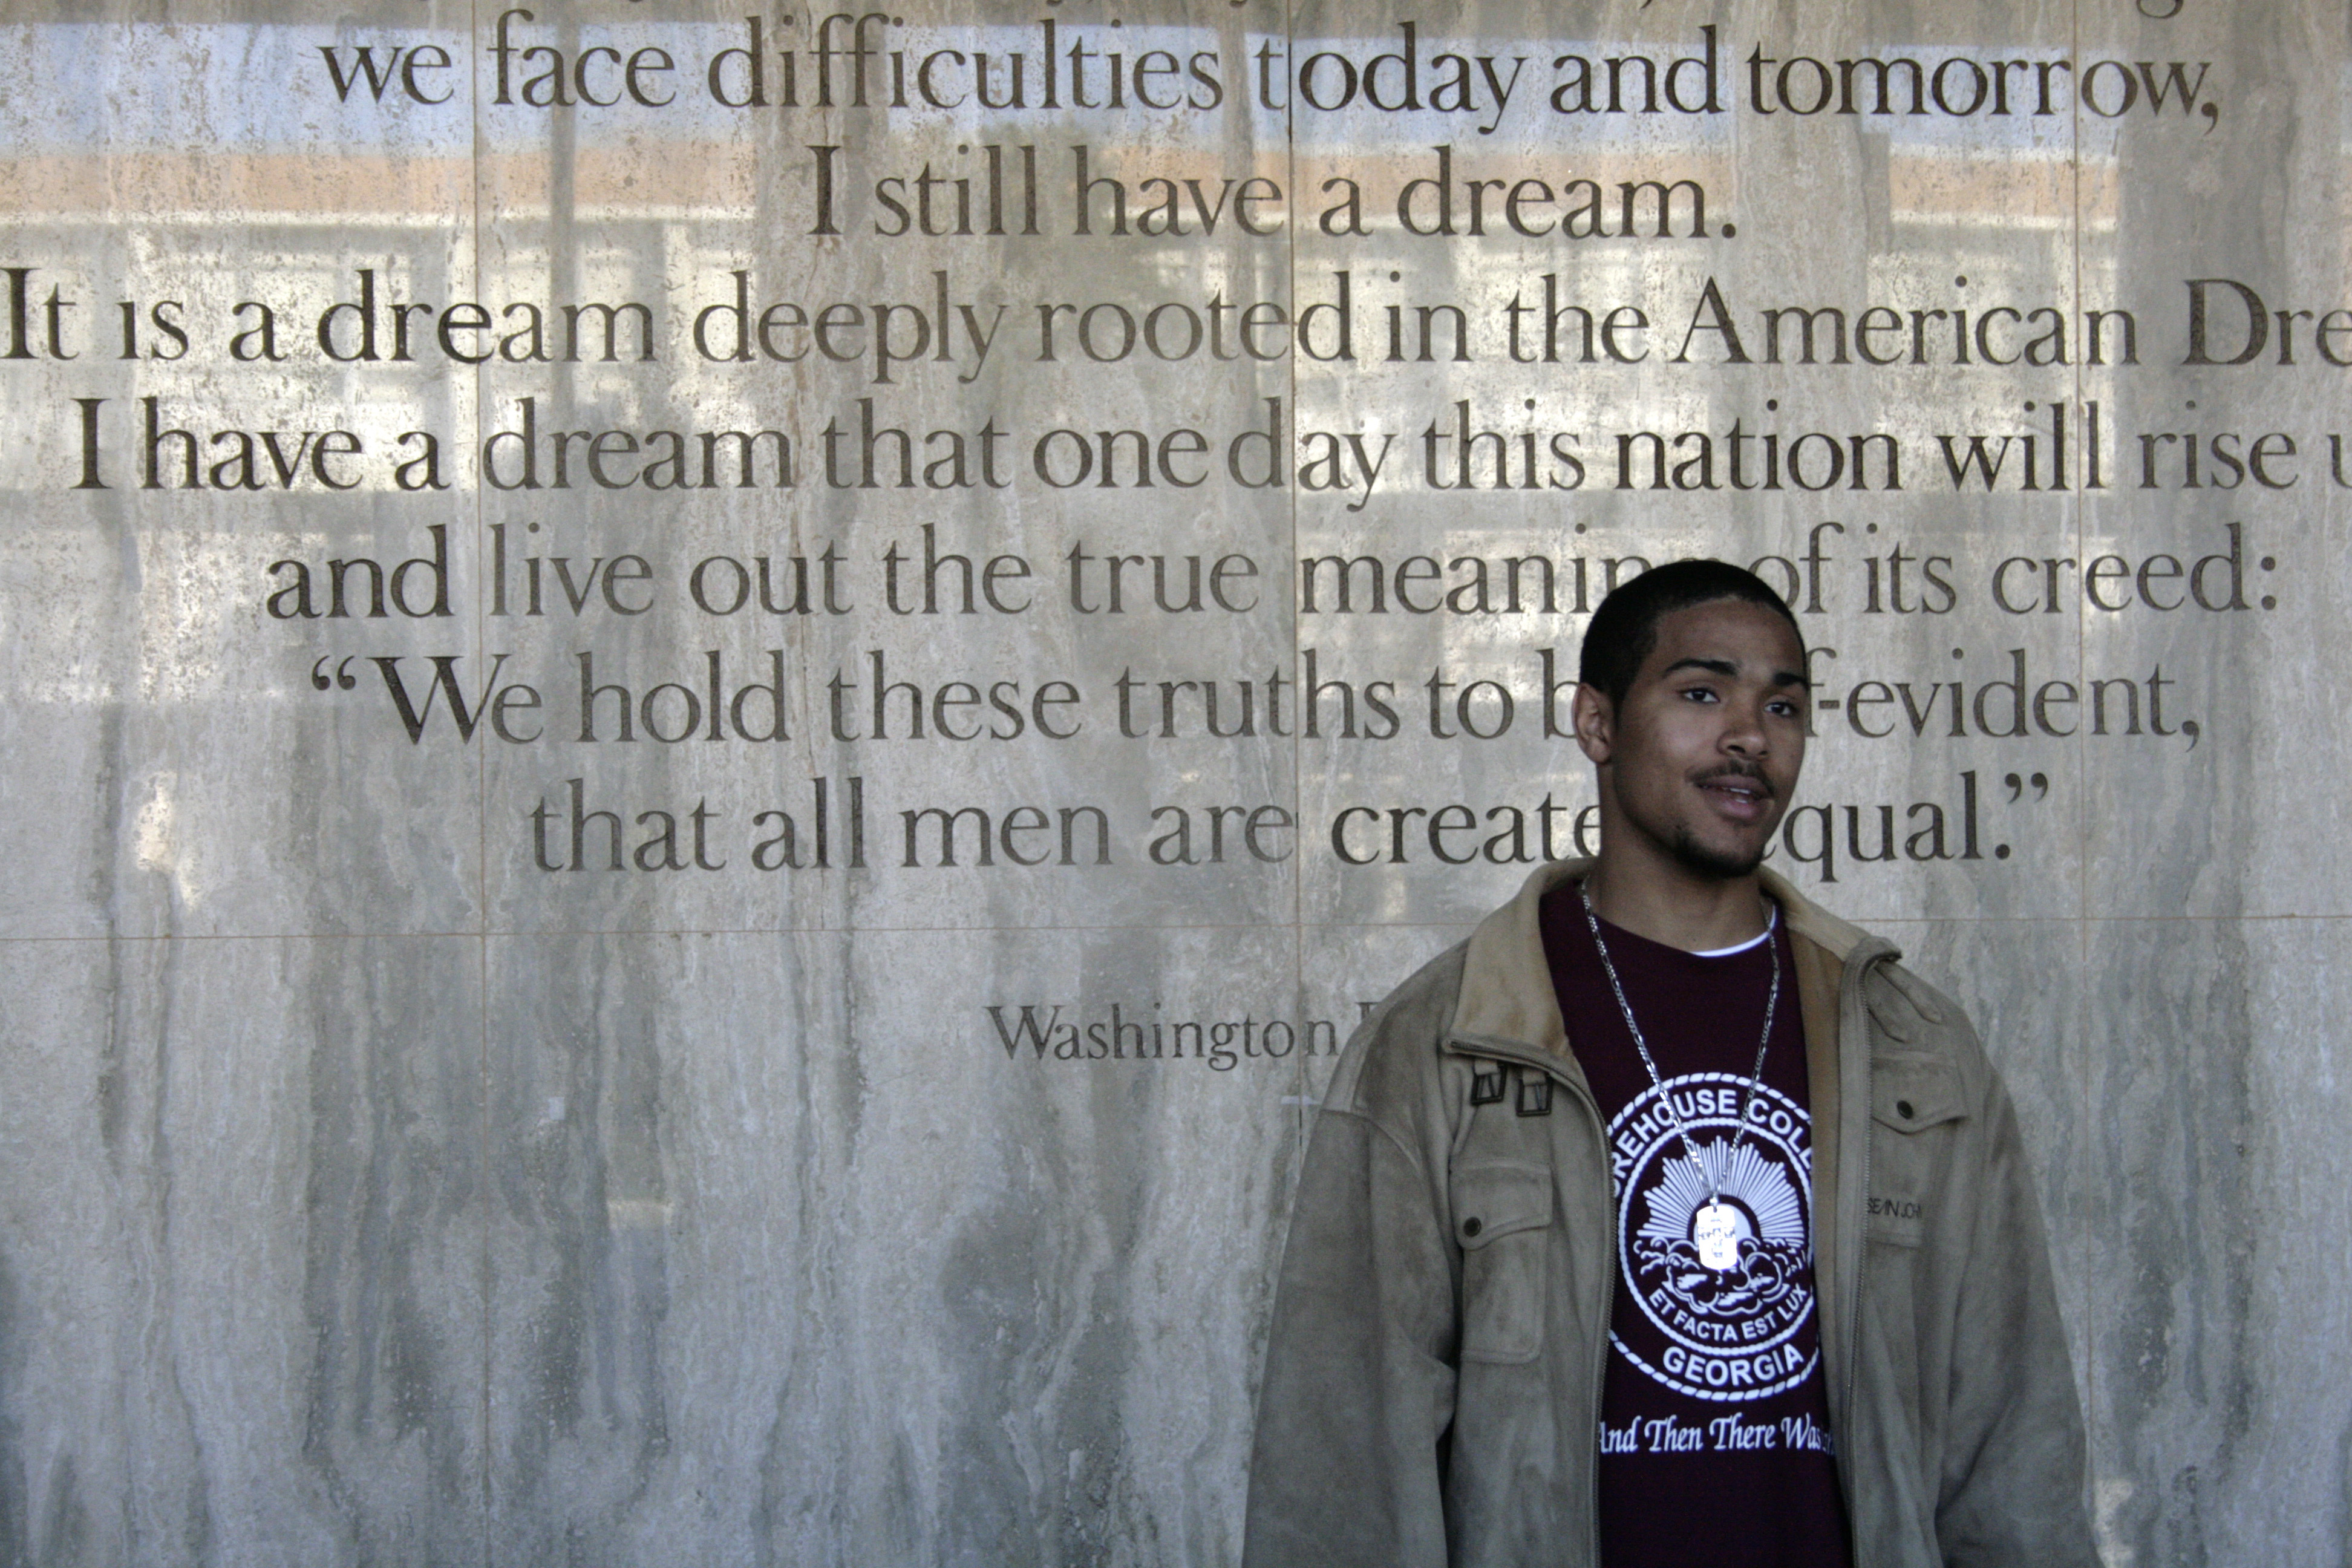 "Thomas Coverson, 19, a freshman at Morehouse College in Atlanta, Georgia, explains his passion for the history of the civil rights movement in front of Martin Luther King Jr.'s famous ""I Have a Dream"" speech"" at Martin Luther King Jr. International Chapel at Morehouse College in Atlanta, Georgia, January 8, 2009. Barack Obama's election as the first black U.S. president has rekindled interest in the U.S. civil rights struggles of the 1950s and 1960s at a time of continuing wide disparities in income, education and health care between whites and minority groups. Picture taken January 8, 2009. REUTERS/Andrea Shalal-Esa (UNITED STATES)"